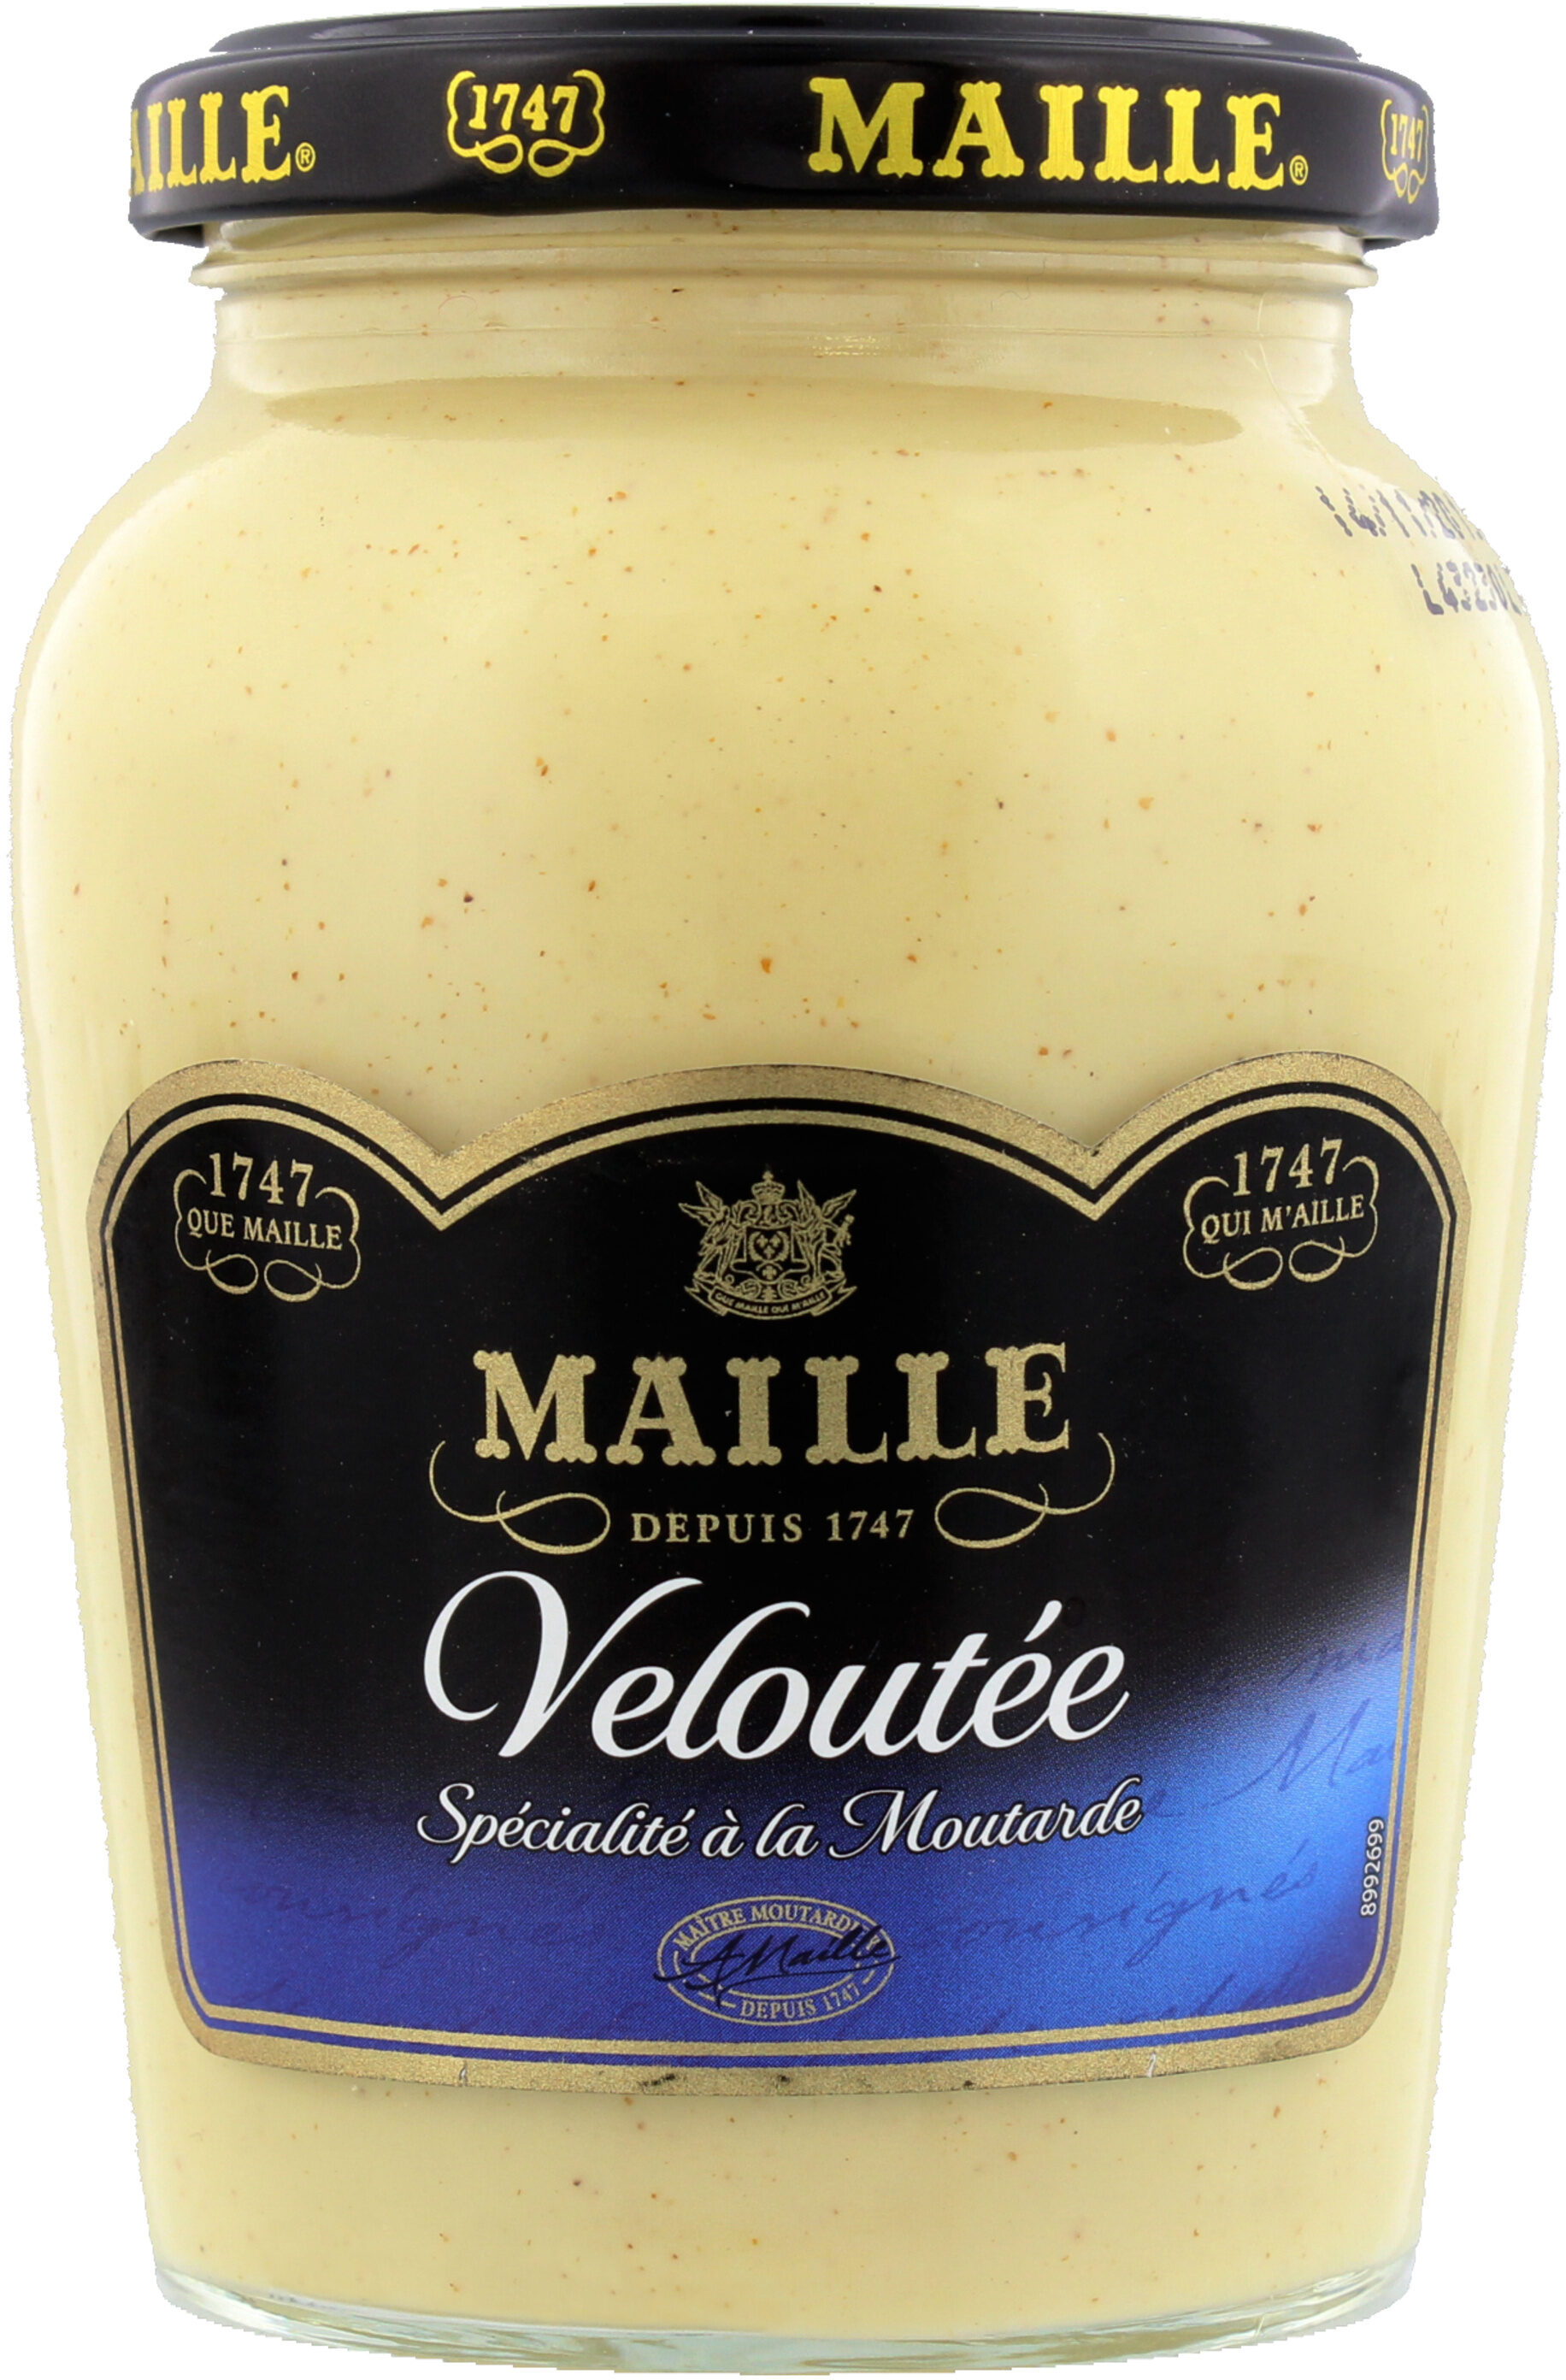 Maille Specialite à la Moutarde Veloute Bocal 360g - Product